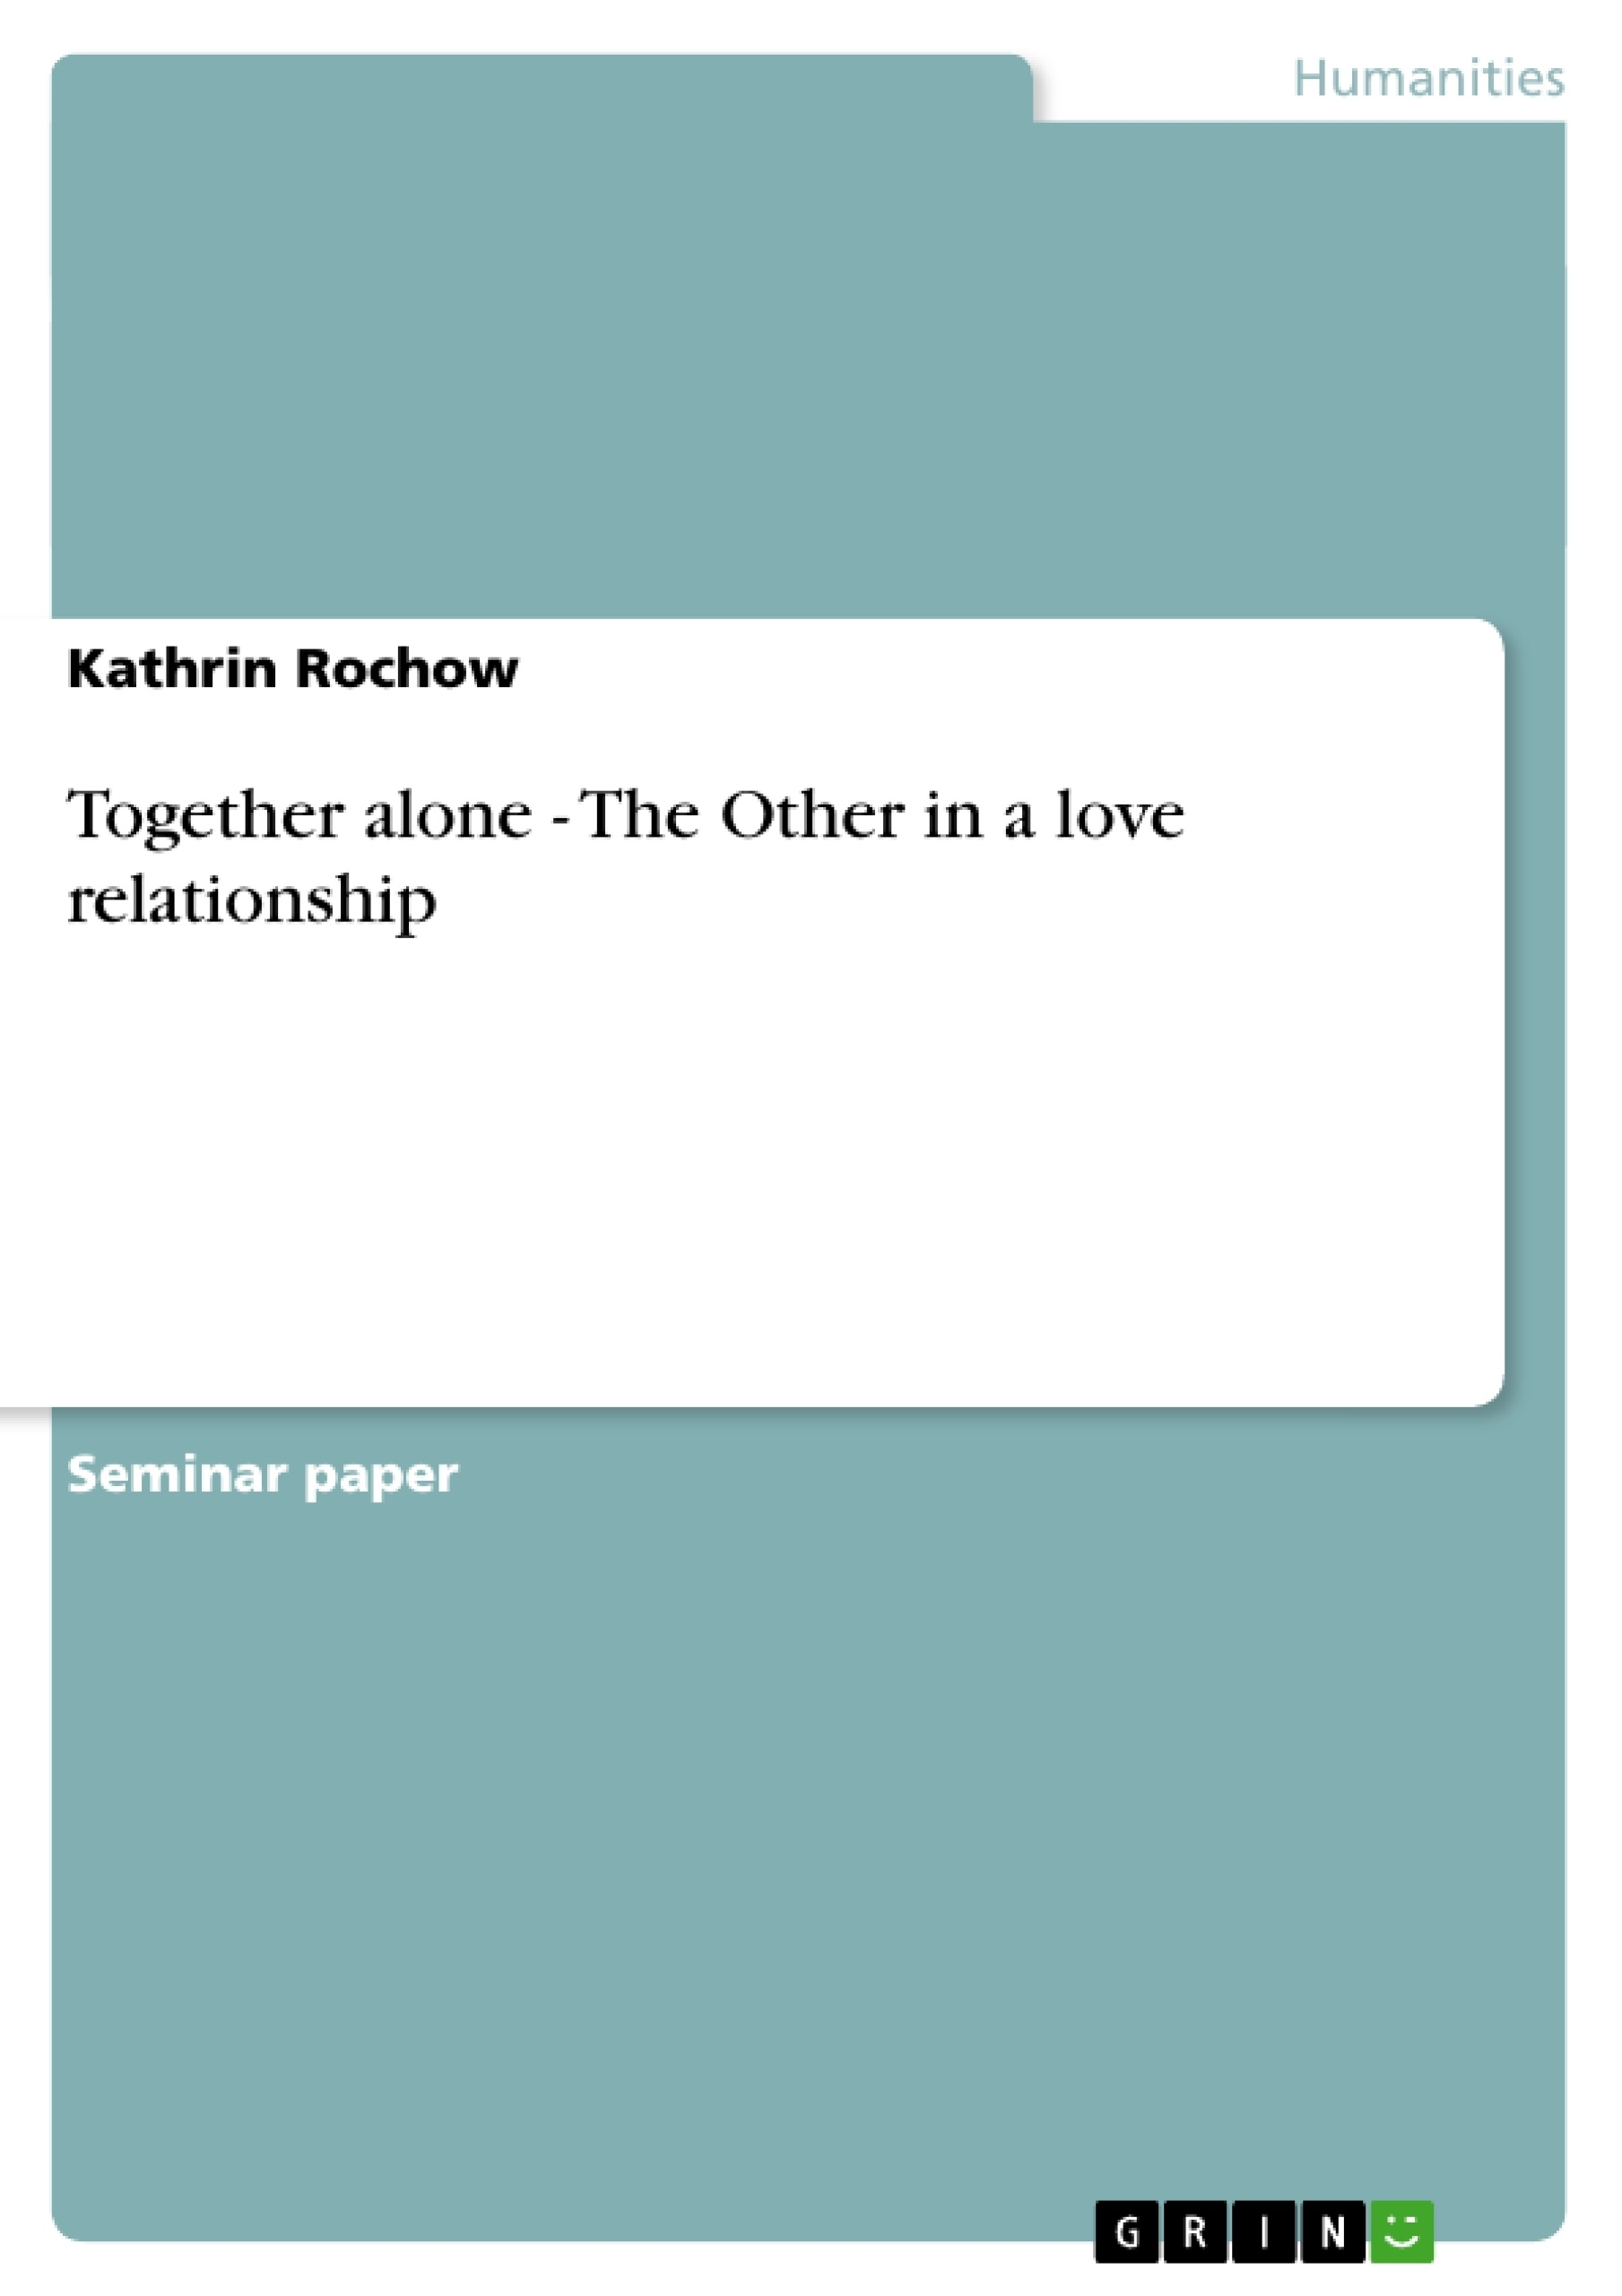 Title: Together alone - The Other in a love relationship